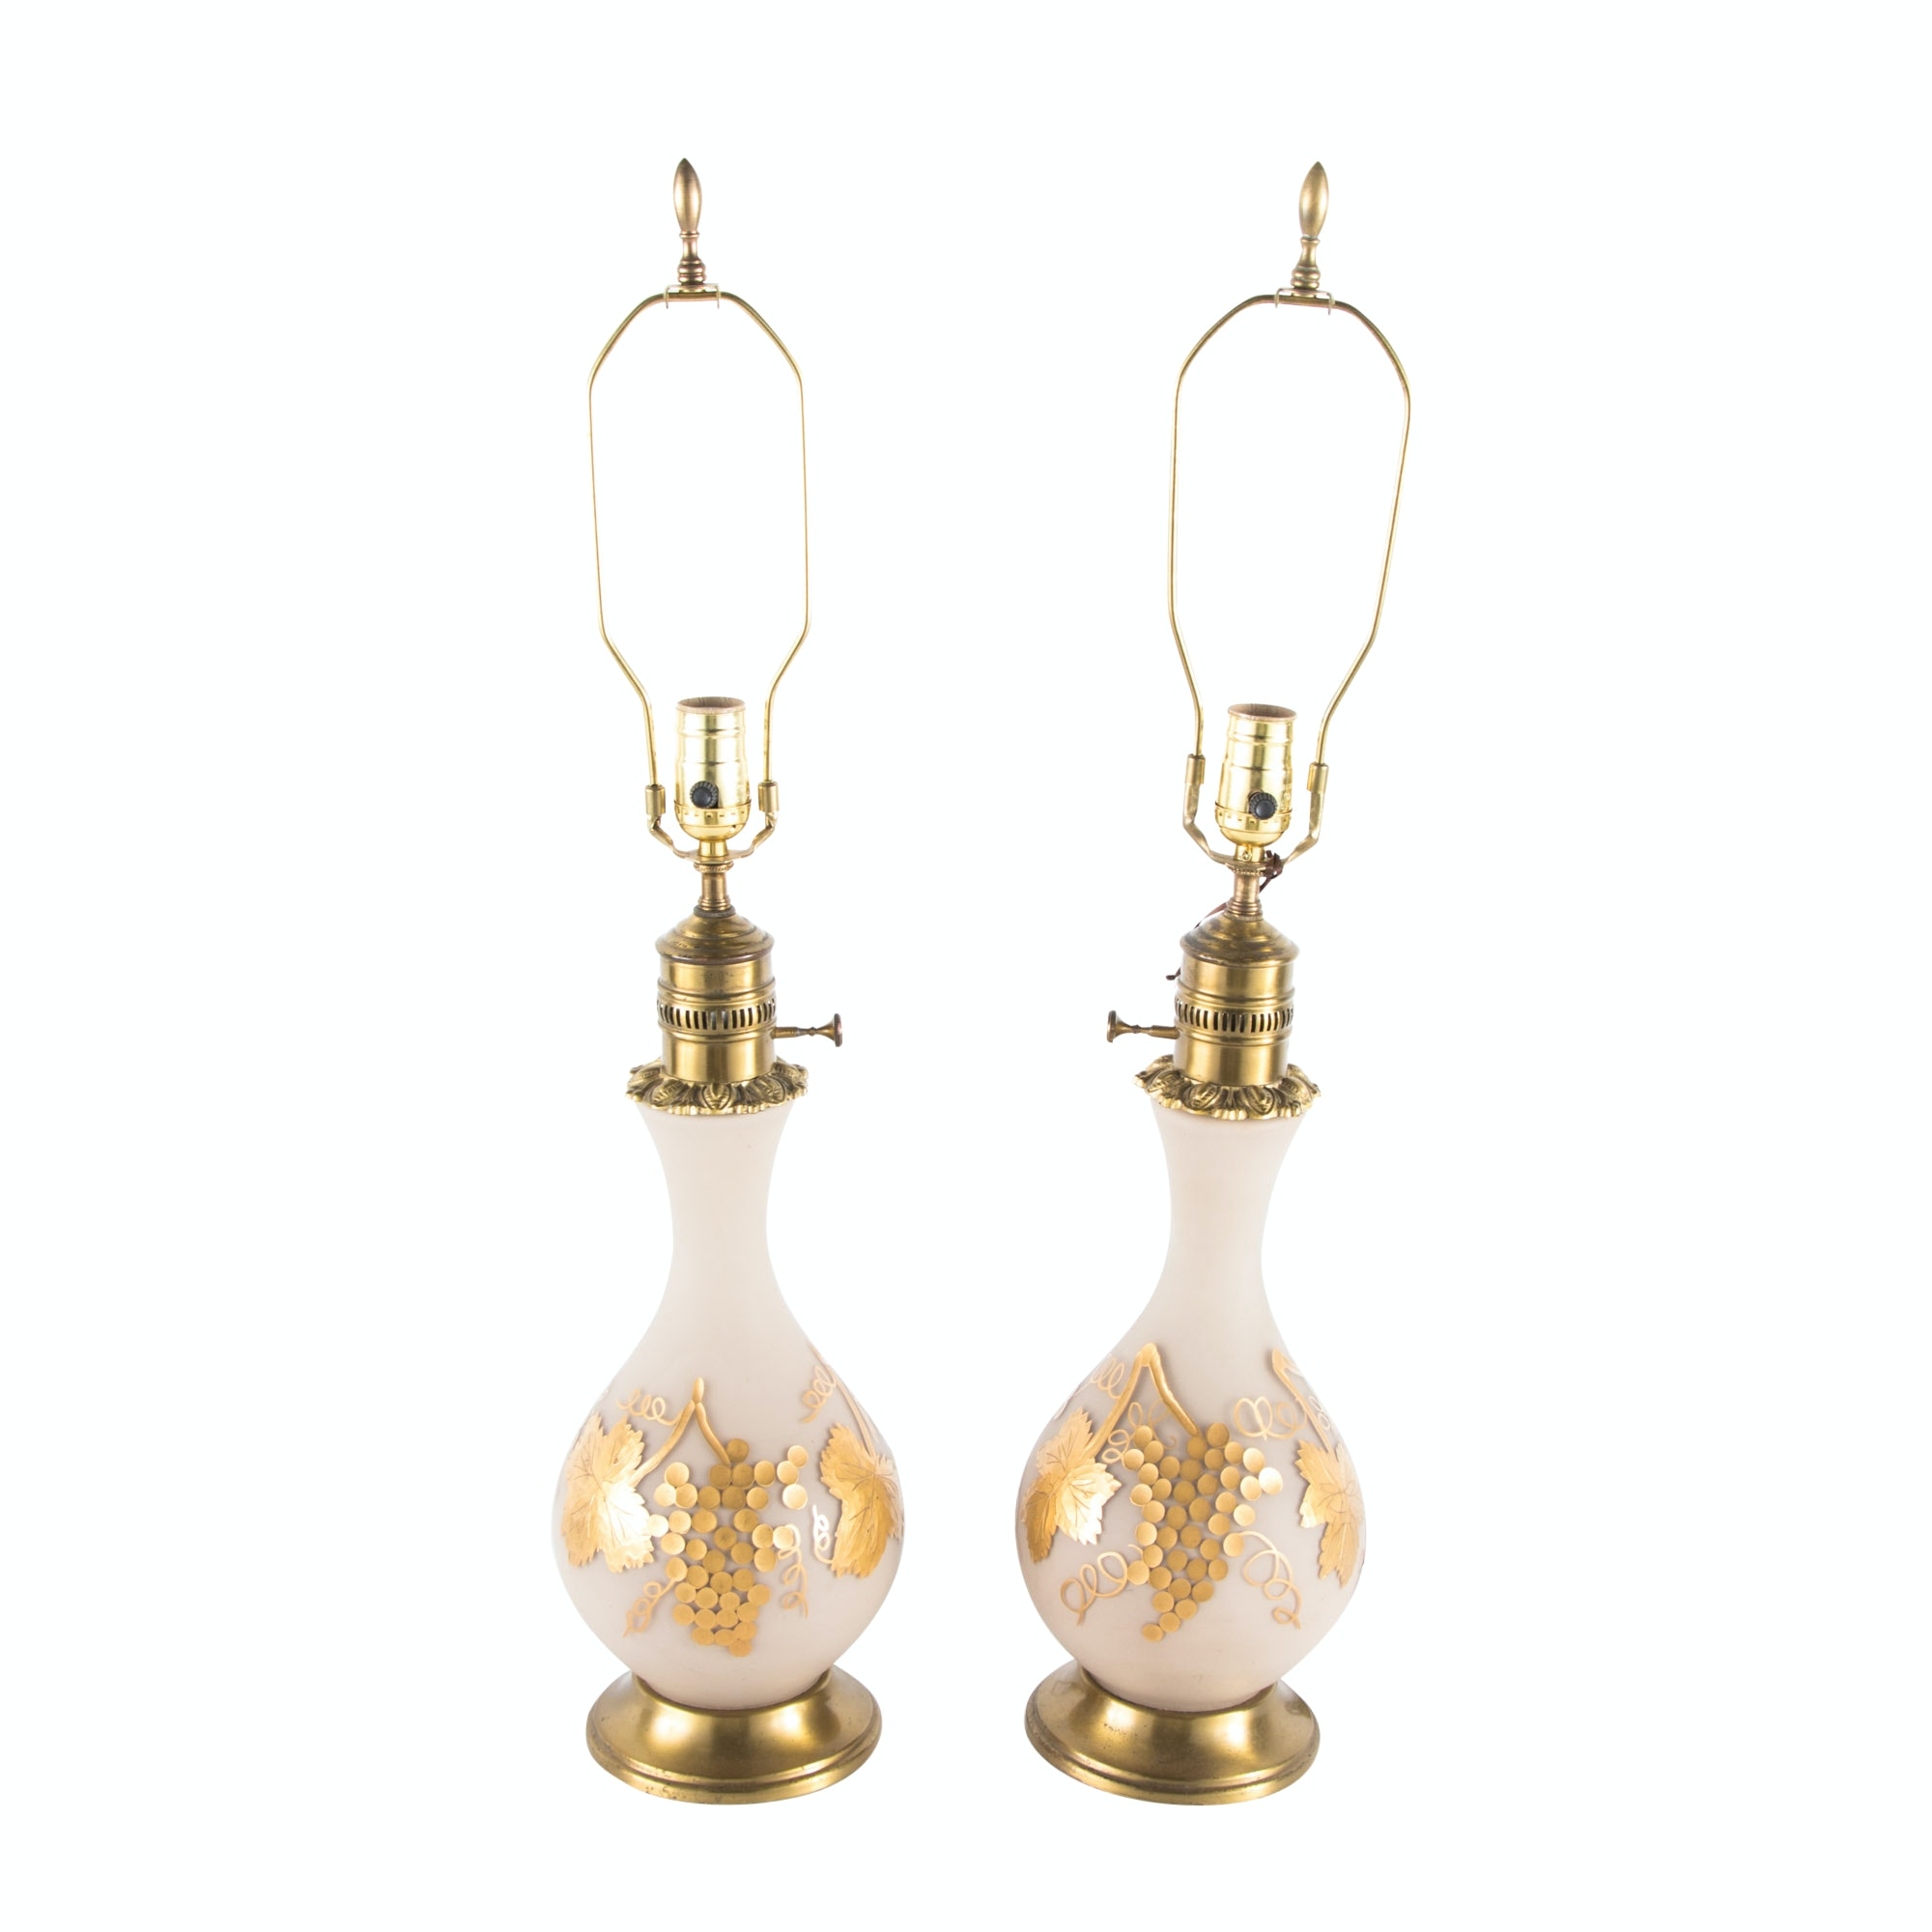 Pair of Gilt Painted and Frosted Glass Table lamps, 20th Century